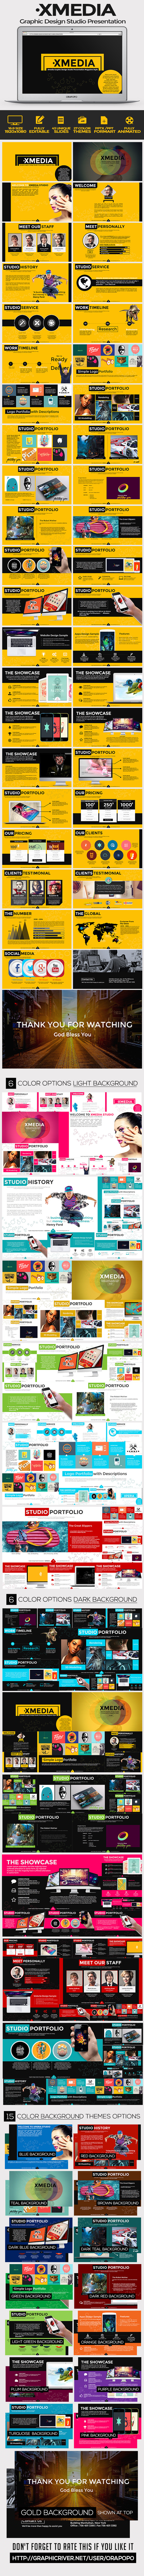 Xmedia Graphic Design Studio Presentation - Creative PowerPoint Templates